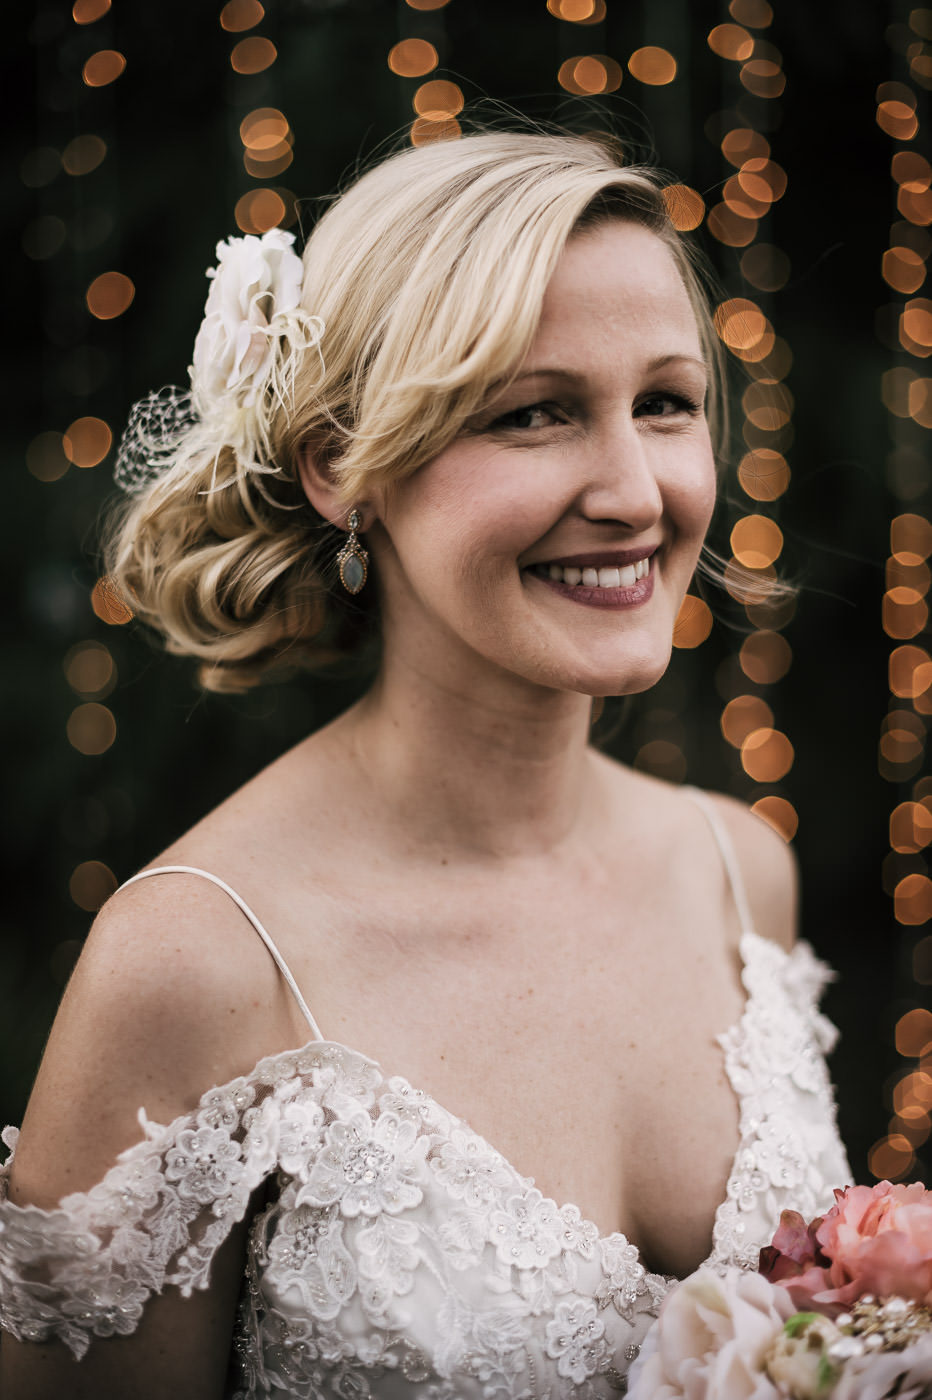 beautiful headshot of a vintage styled bride with gorgeous details and twinkling lights in the background